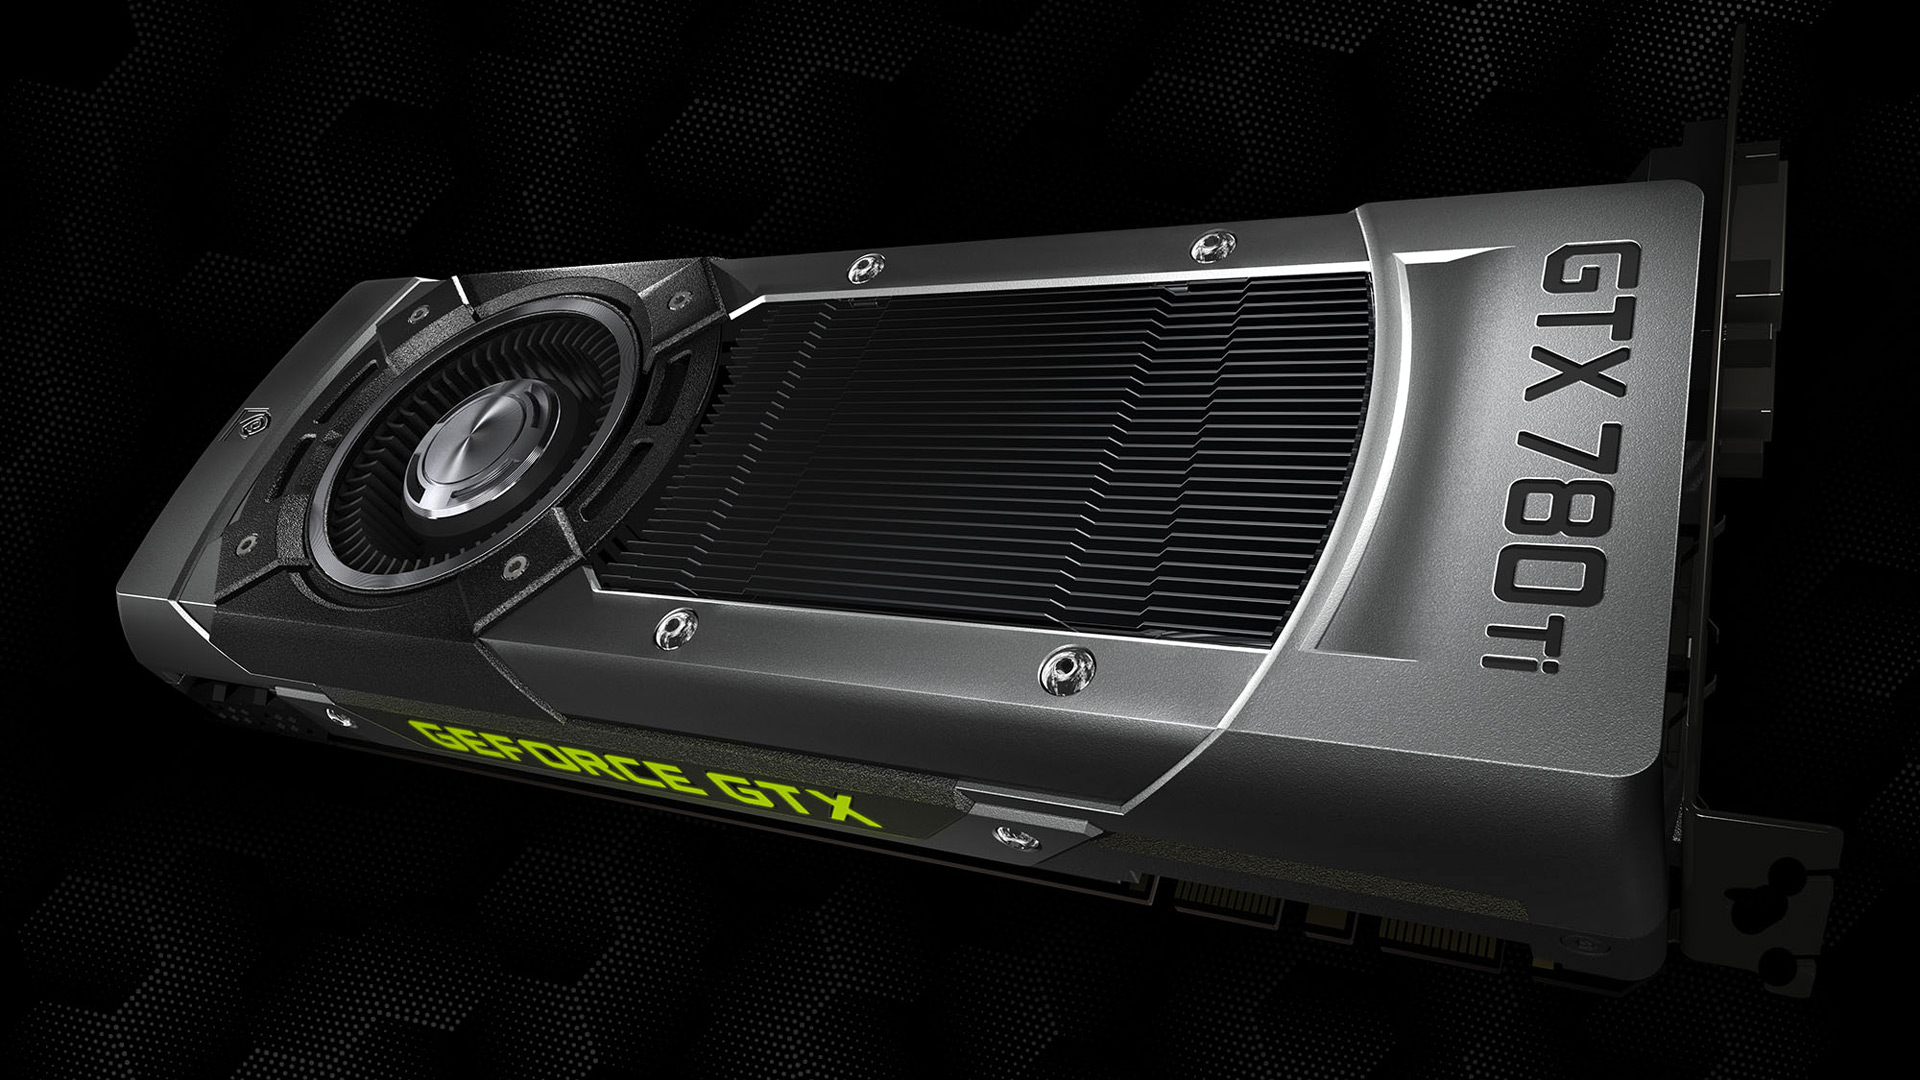 Geforce gtx 780 ti game benchmarks in stereo 3d and 120hz 2d mode